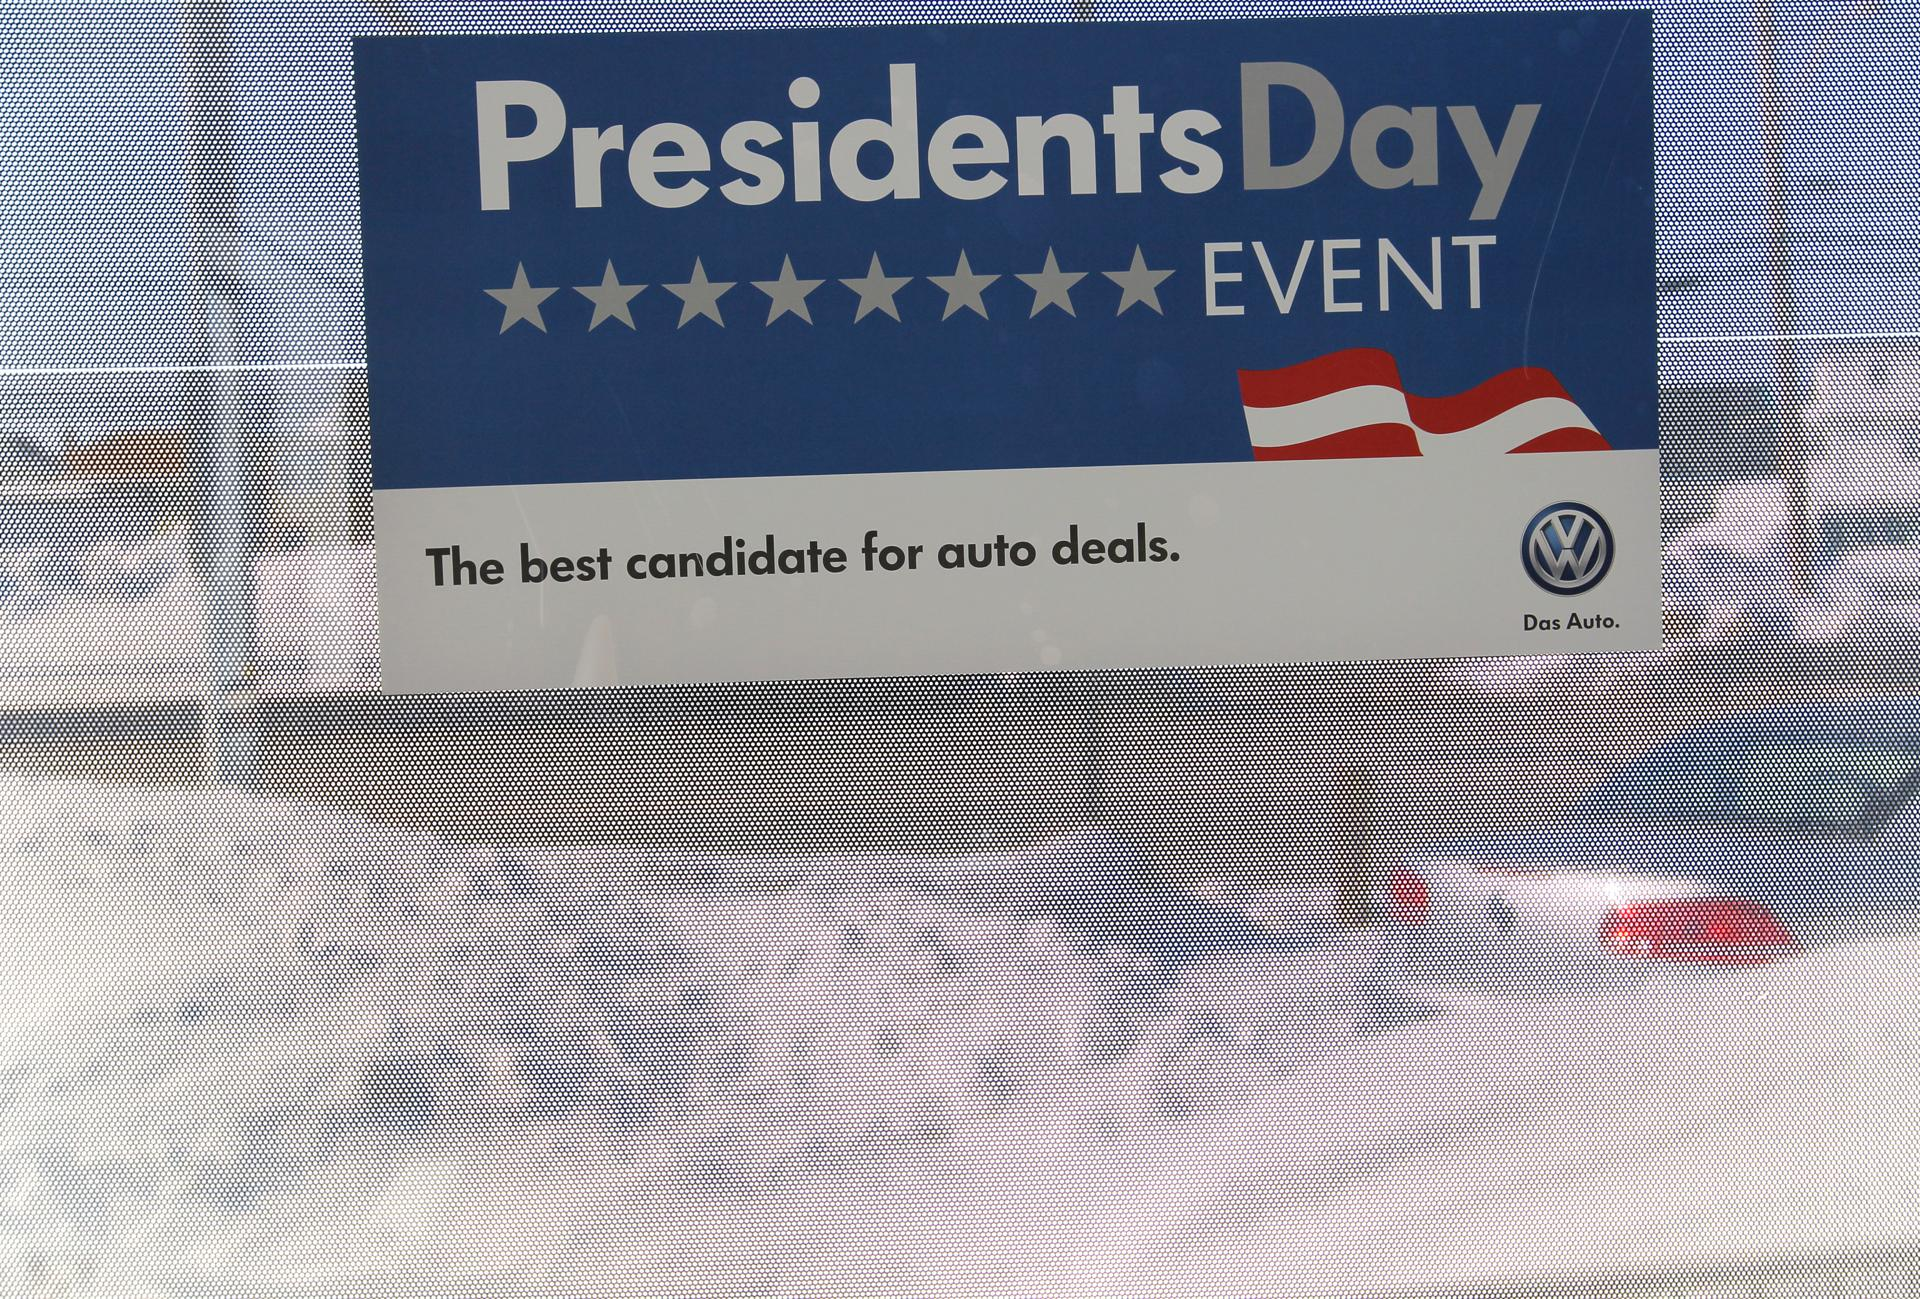 Cars and snow filled the lot at colonial volkswagen in medford which is still advertising